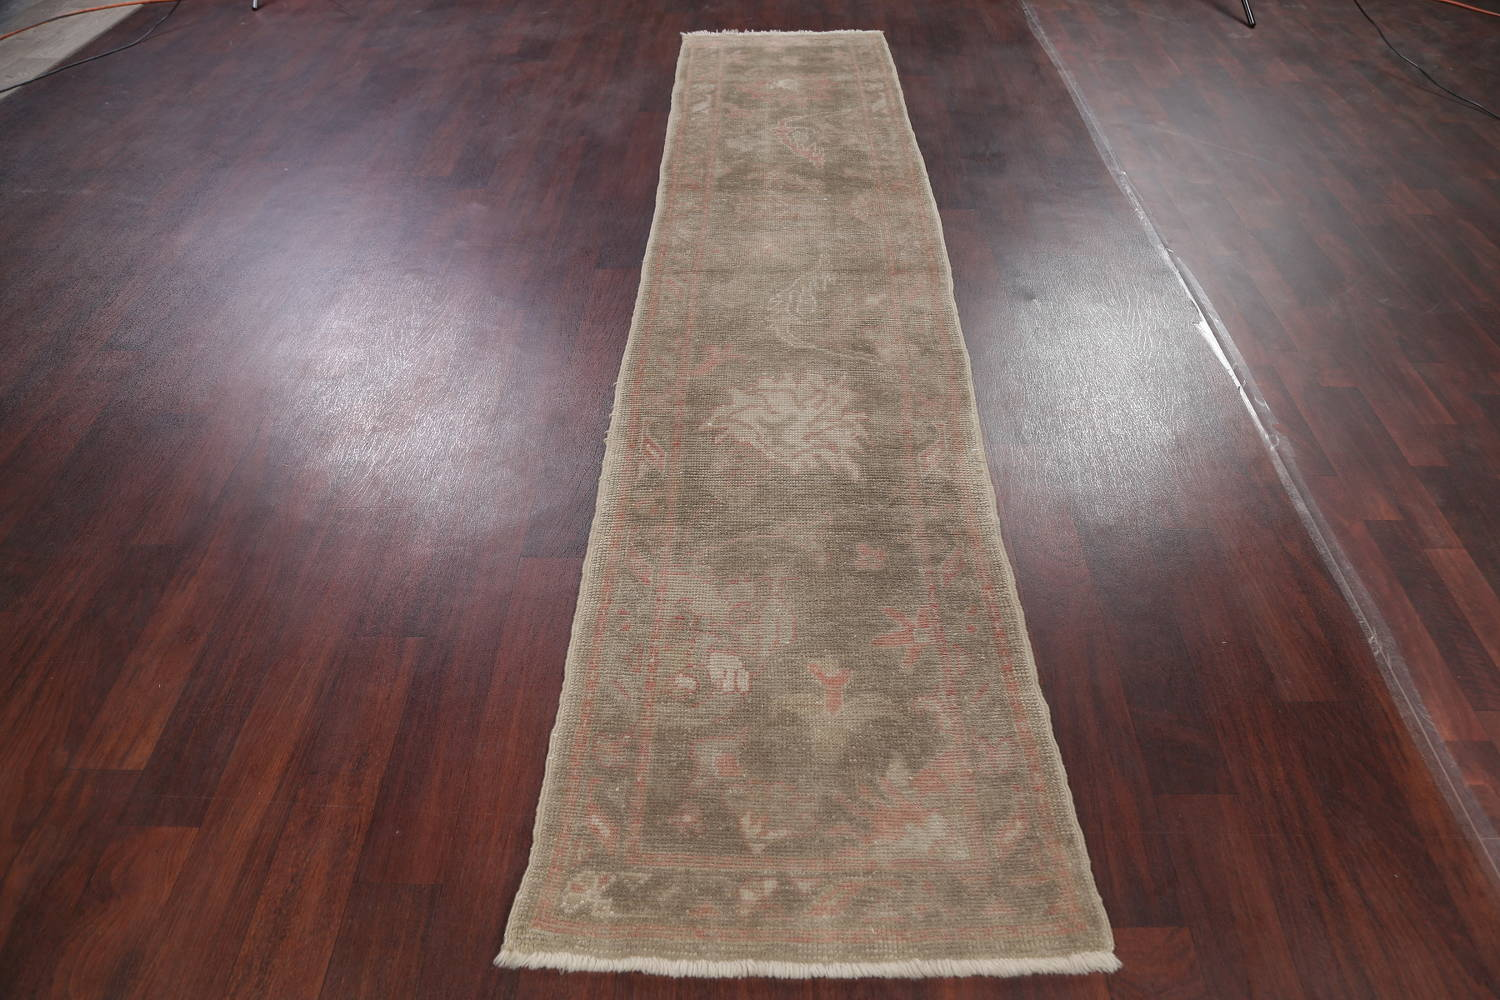 Vegetable Dye Muted Green Oushak Turkish Hand-Knotted Runner Rug 2x12 image 14